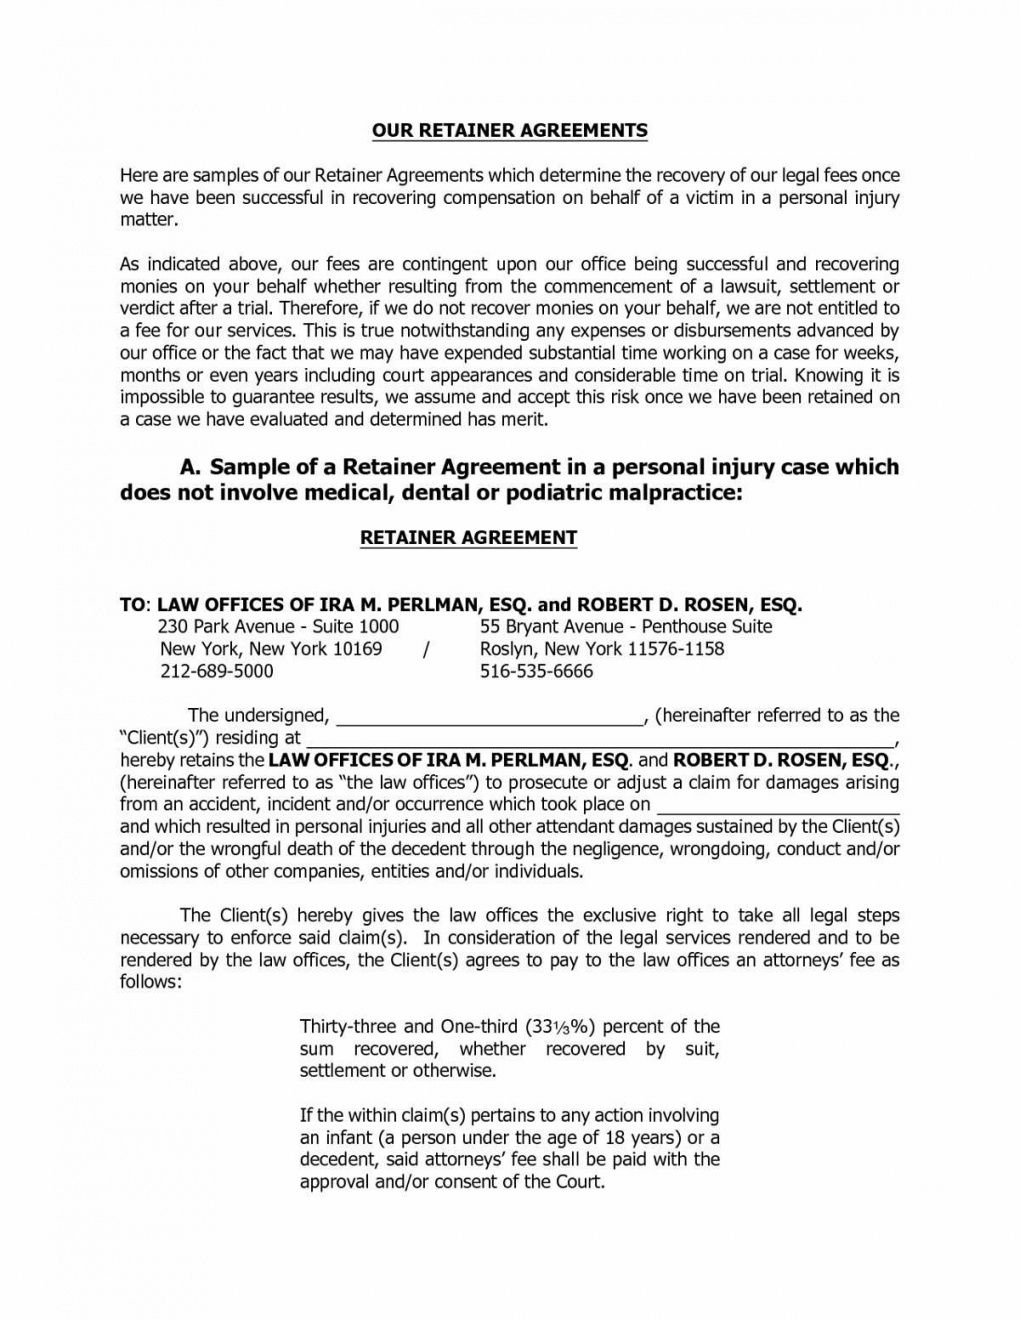 Retainer Fee And Compensation Agreement Letter Sample Retainership